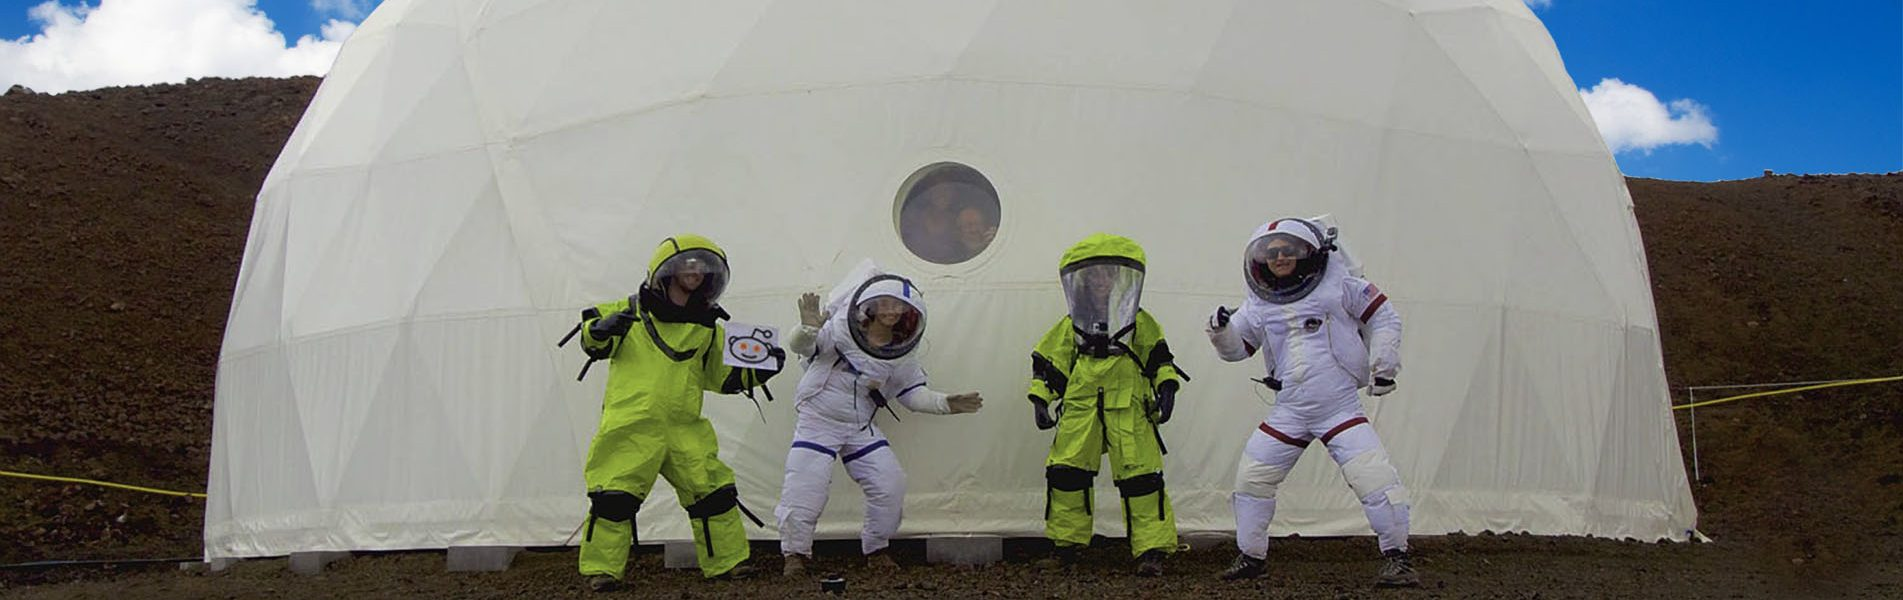 hi-seas2-mock-mars-mission-crew